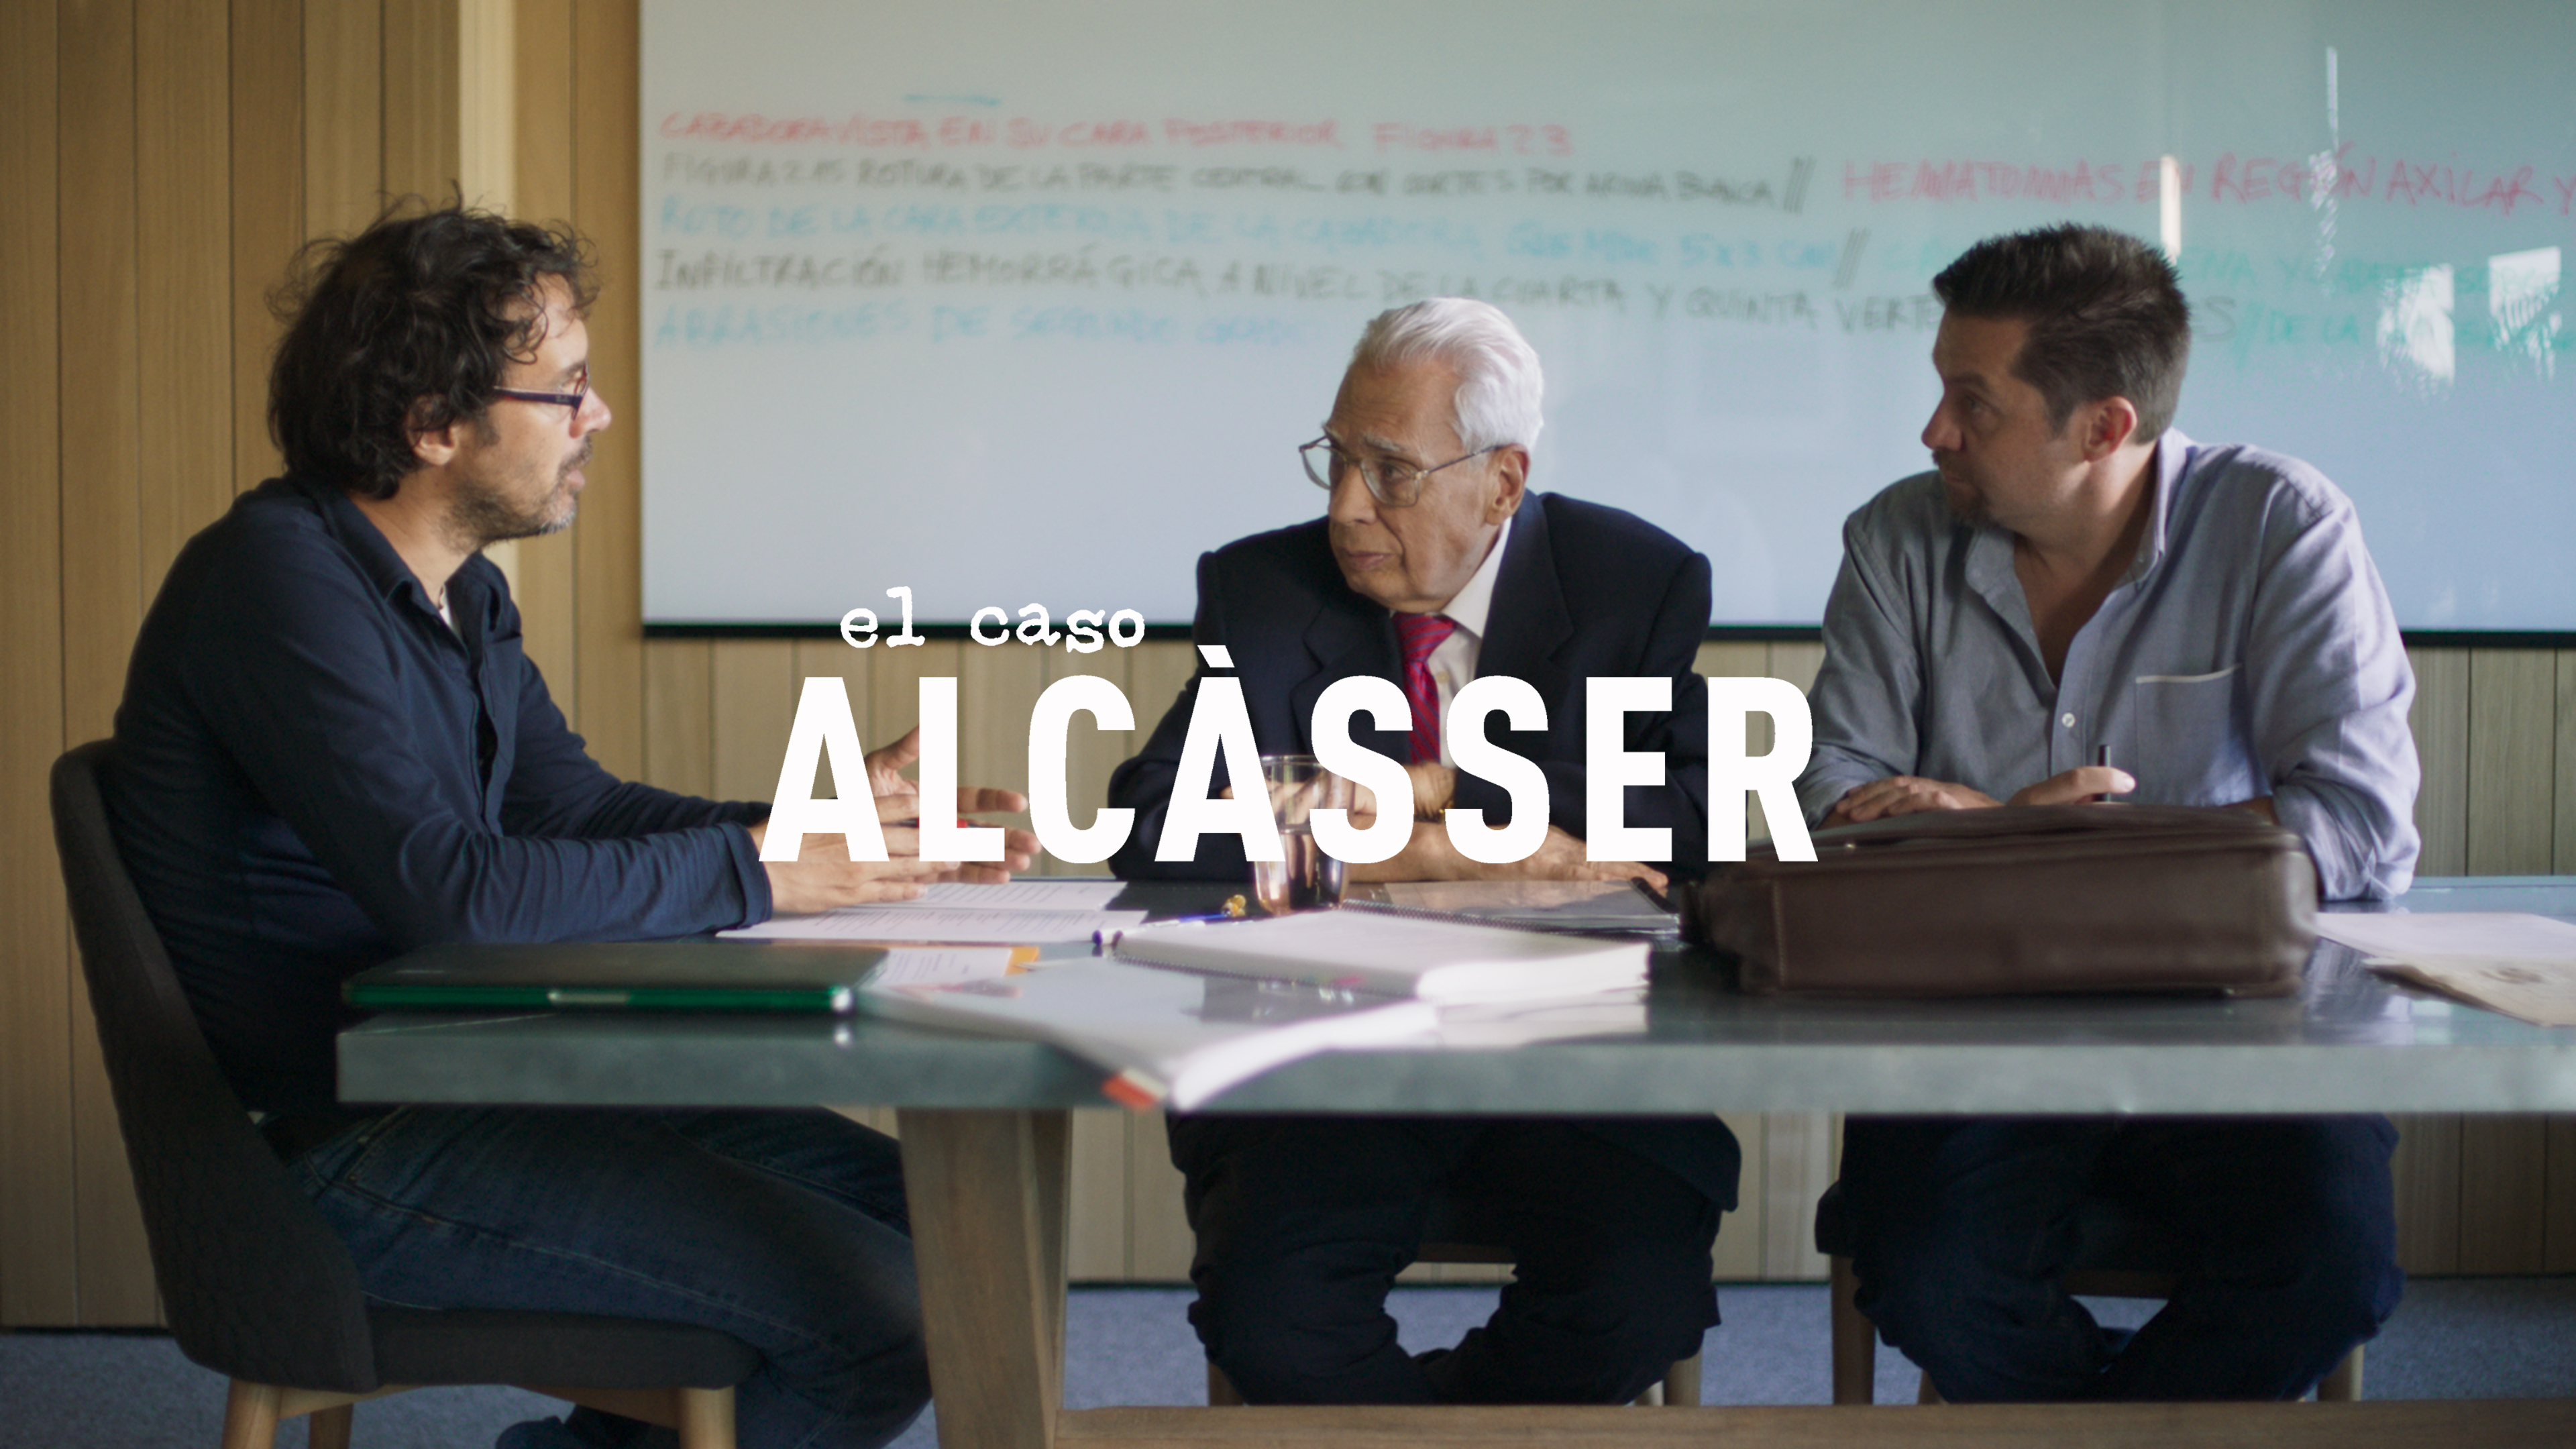 THE ALCÀSSER TRIAL